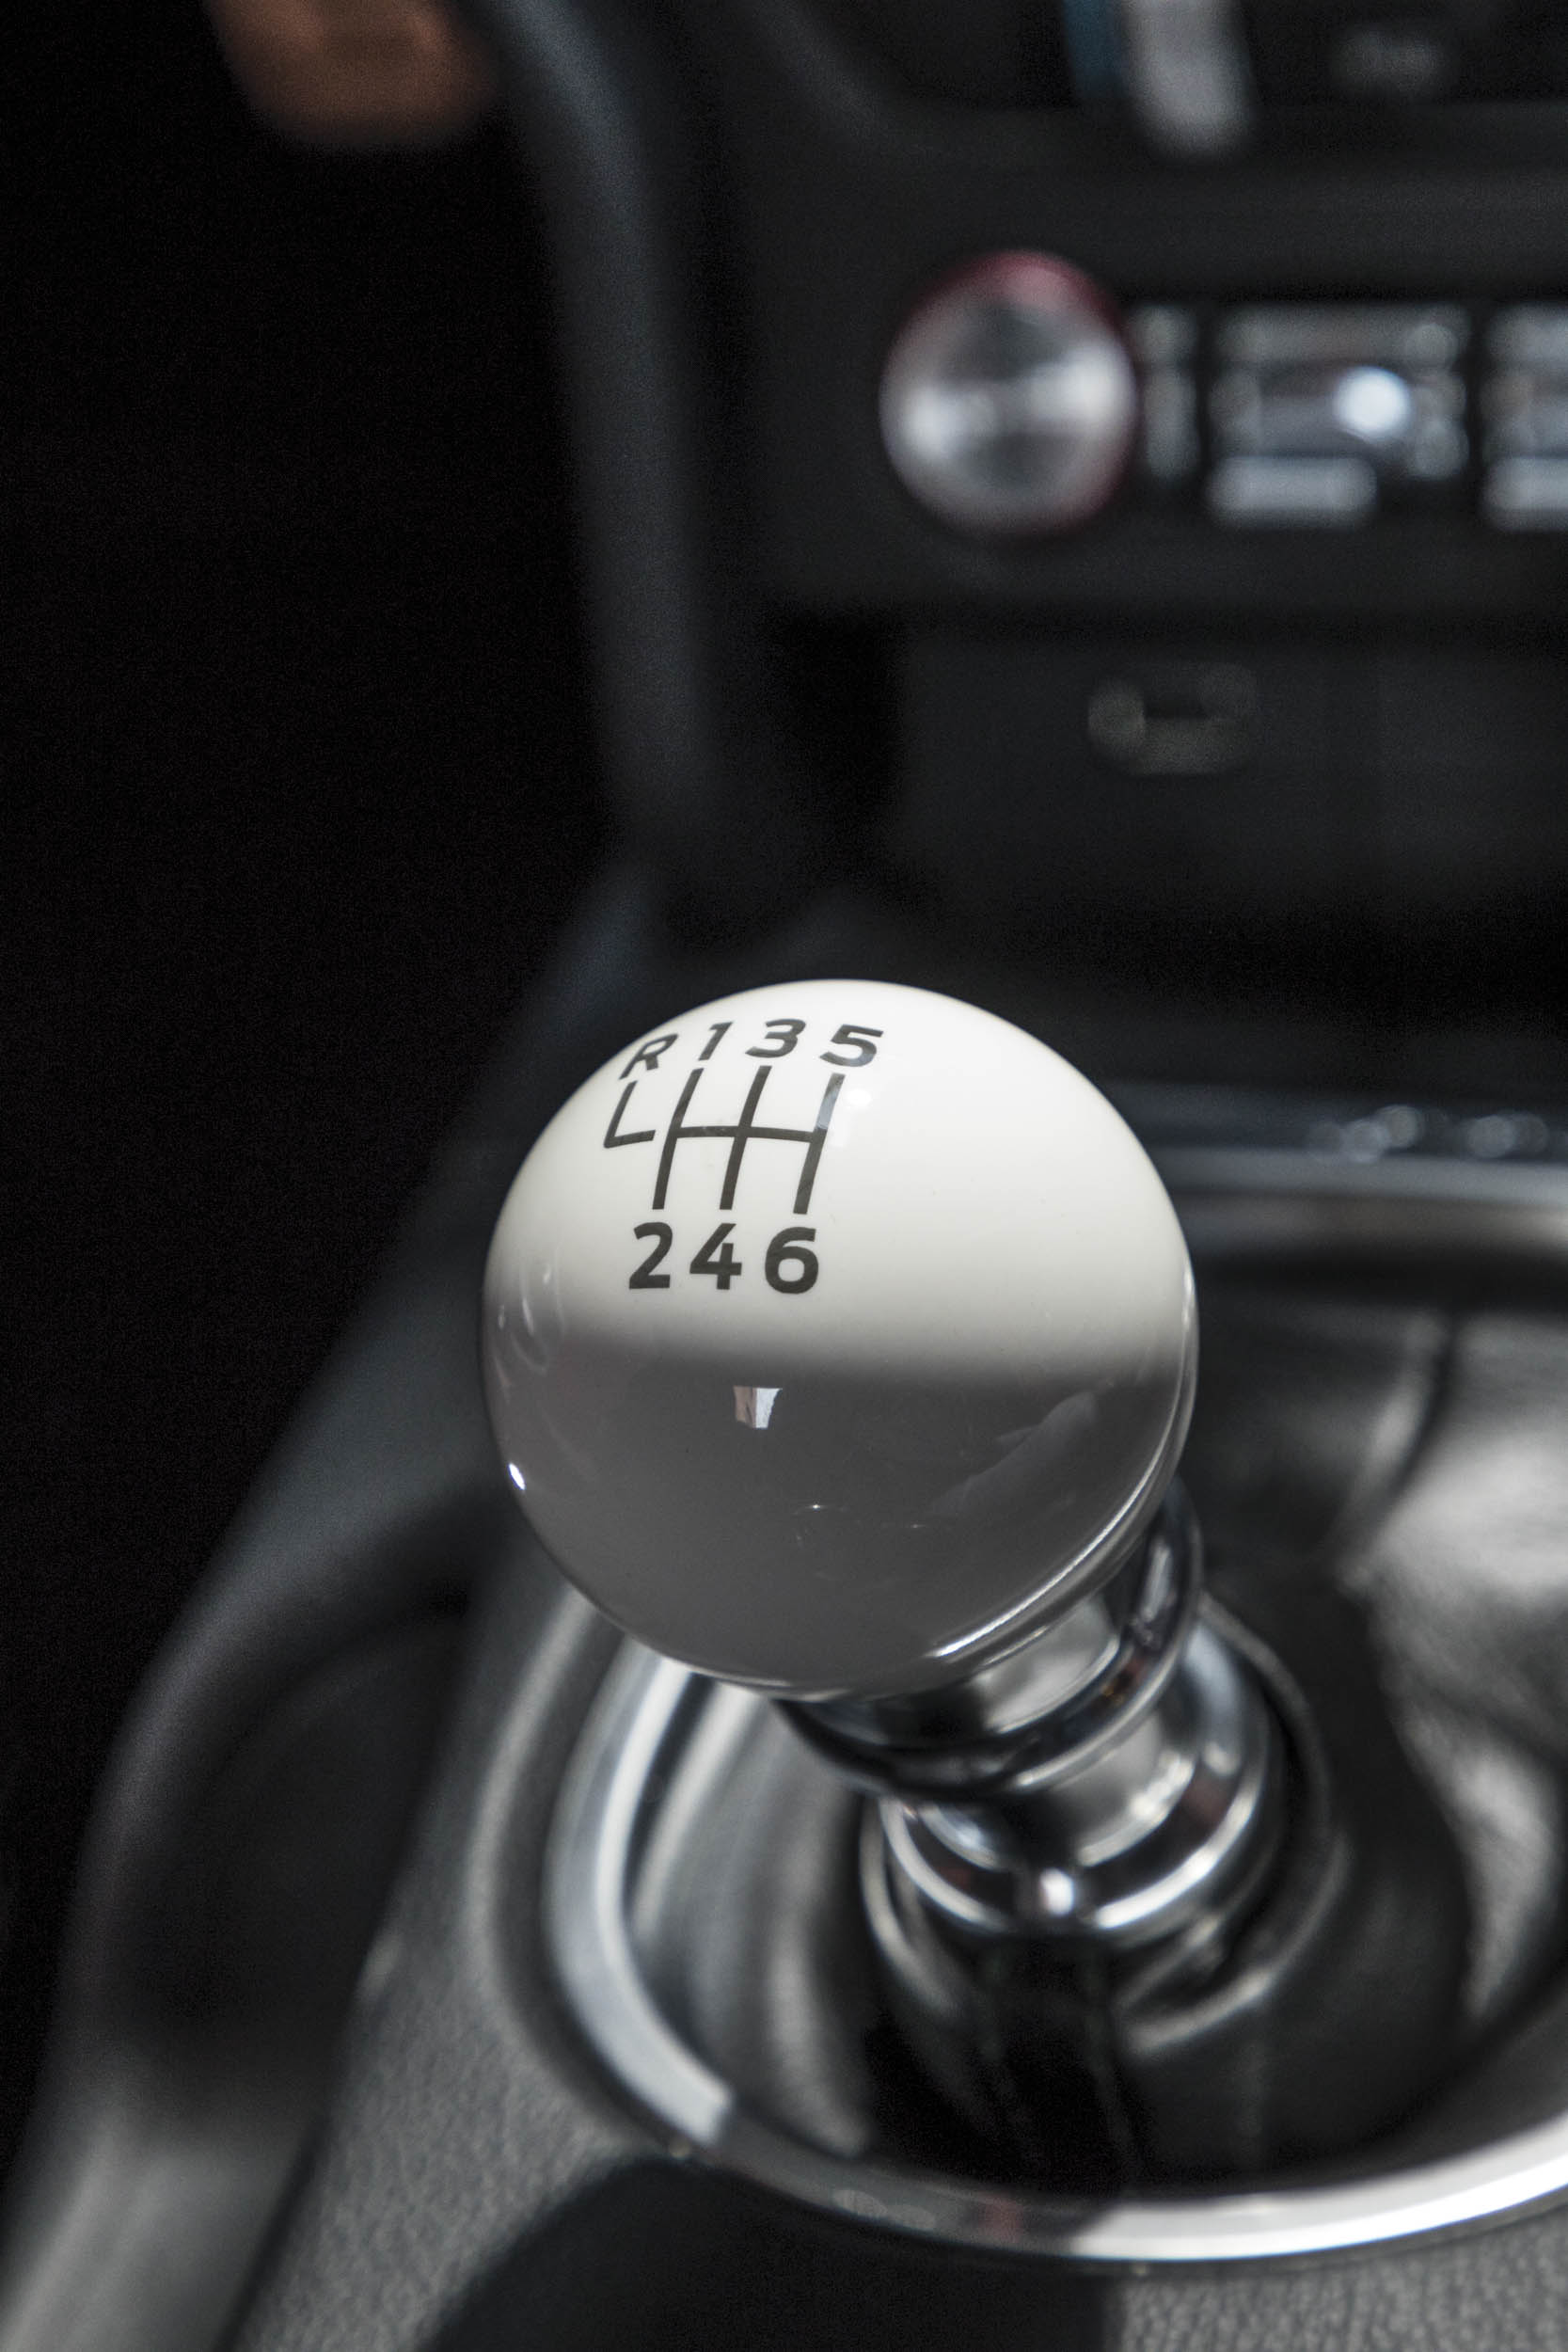 2019 Ford Mustang Bullitt shift knob